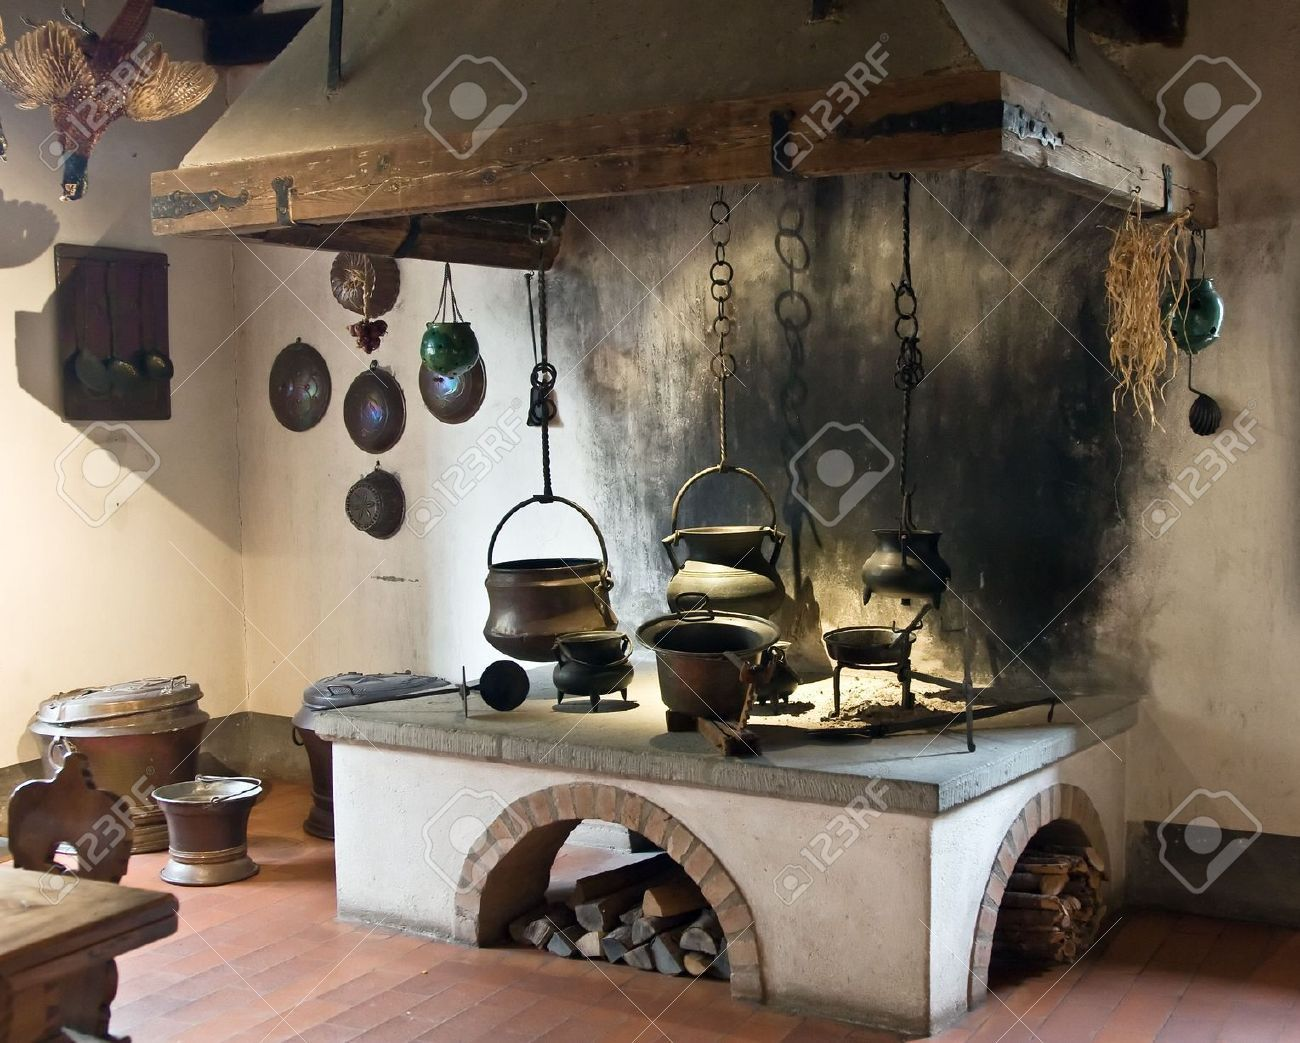 Cucina Roma Antica Old Irish Kitchens Antigua Cocina Estilo Medieval Es